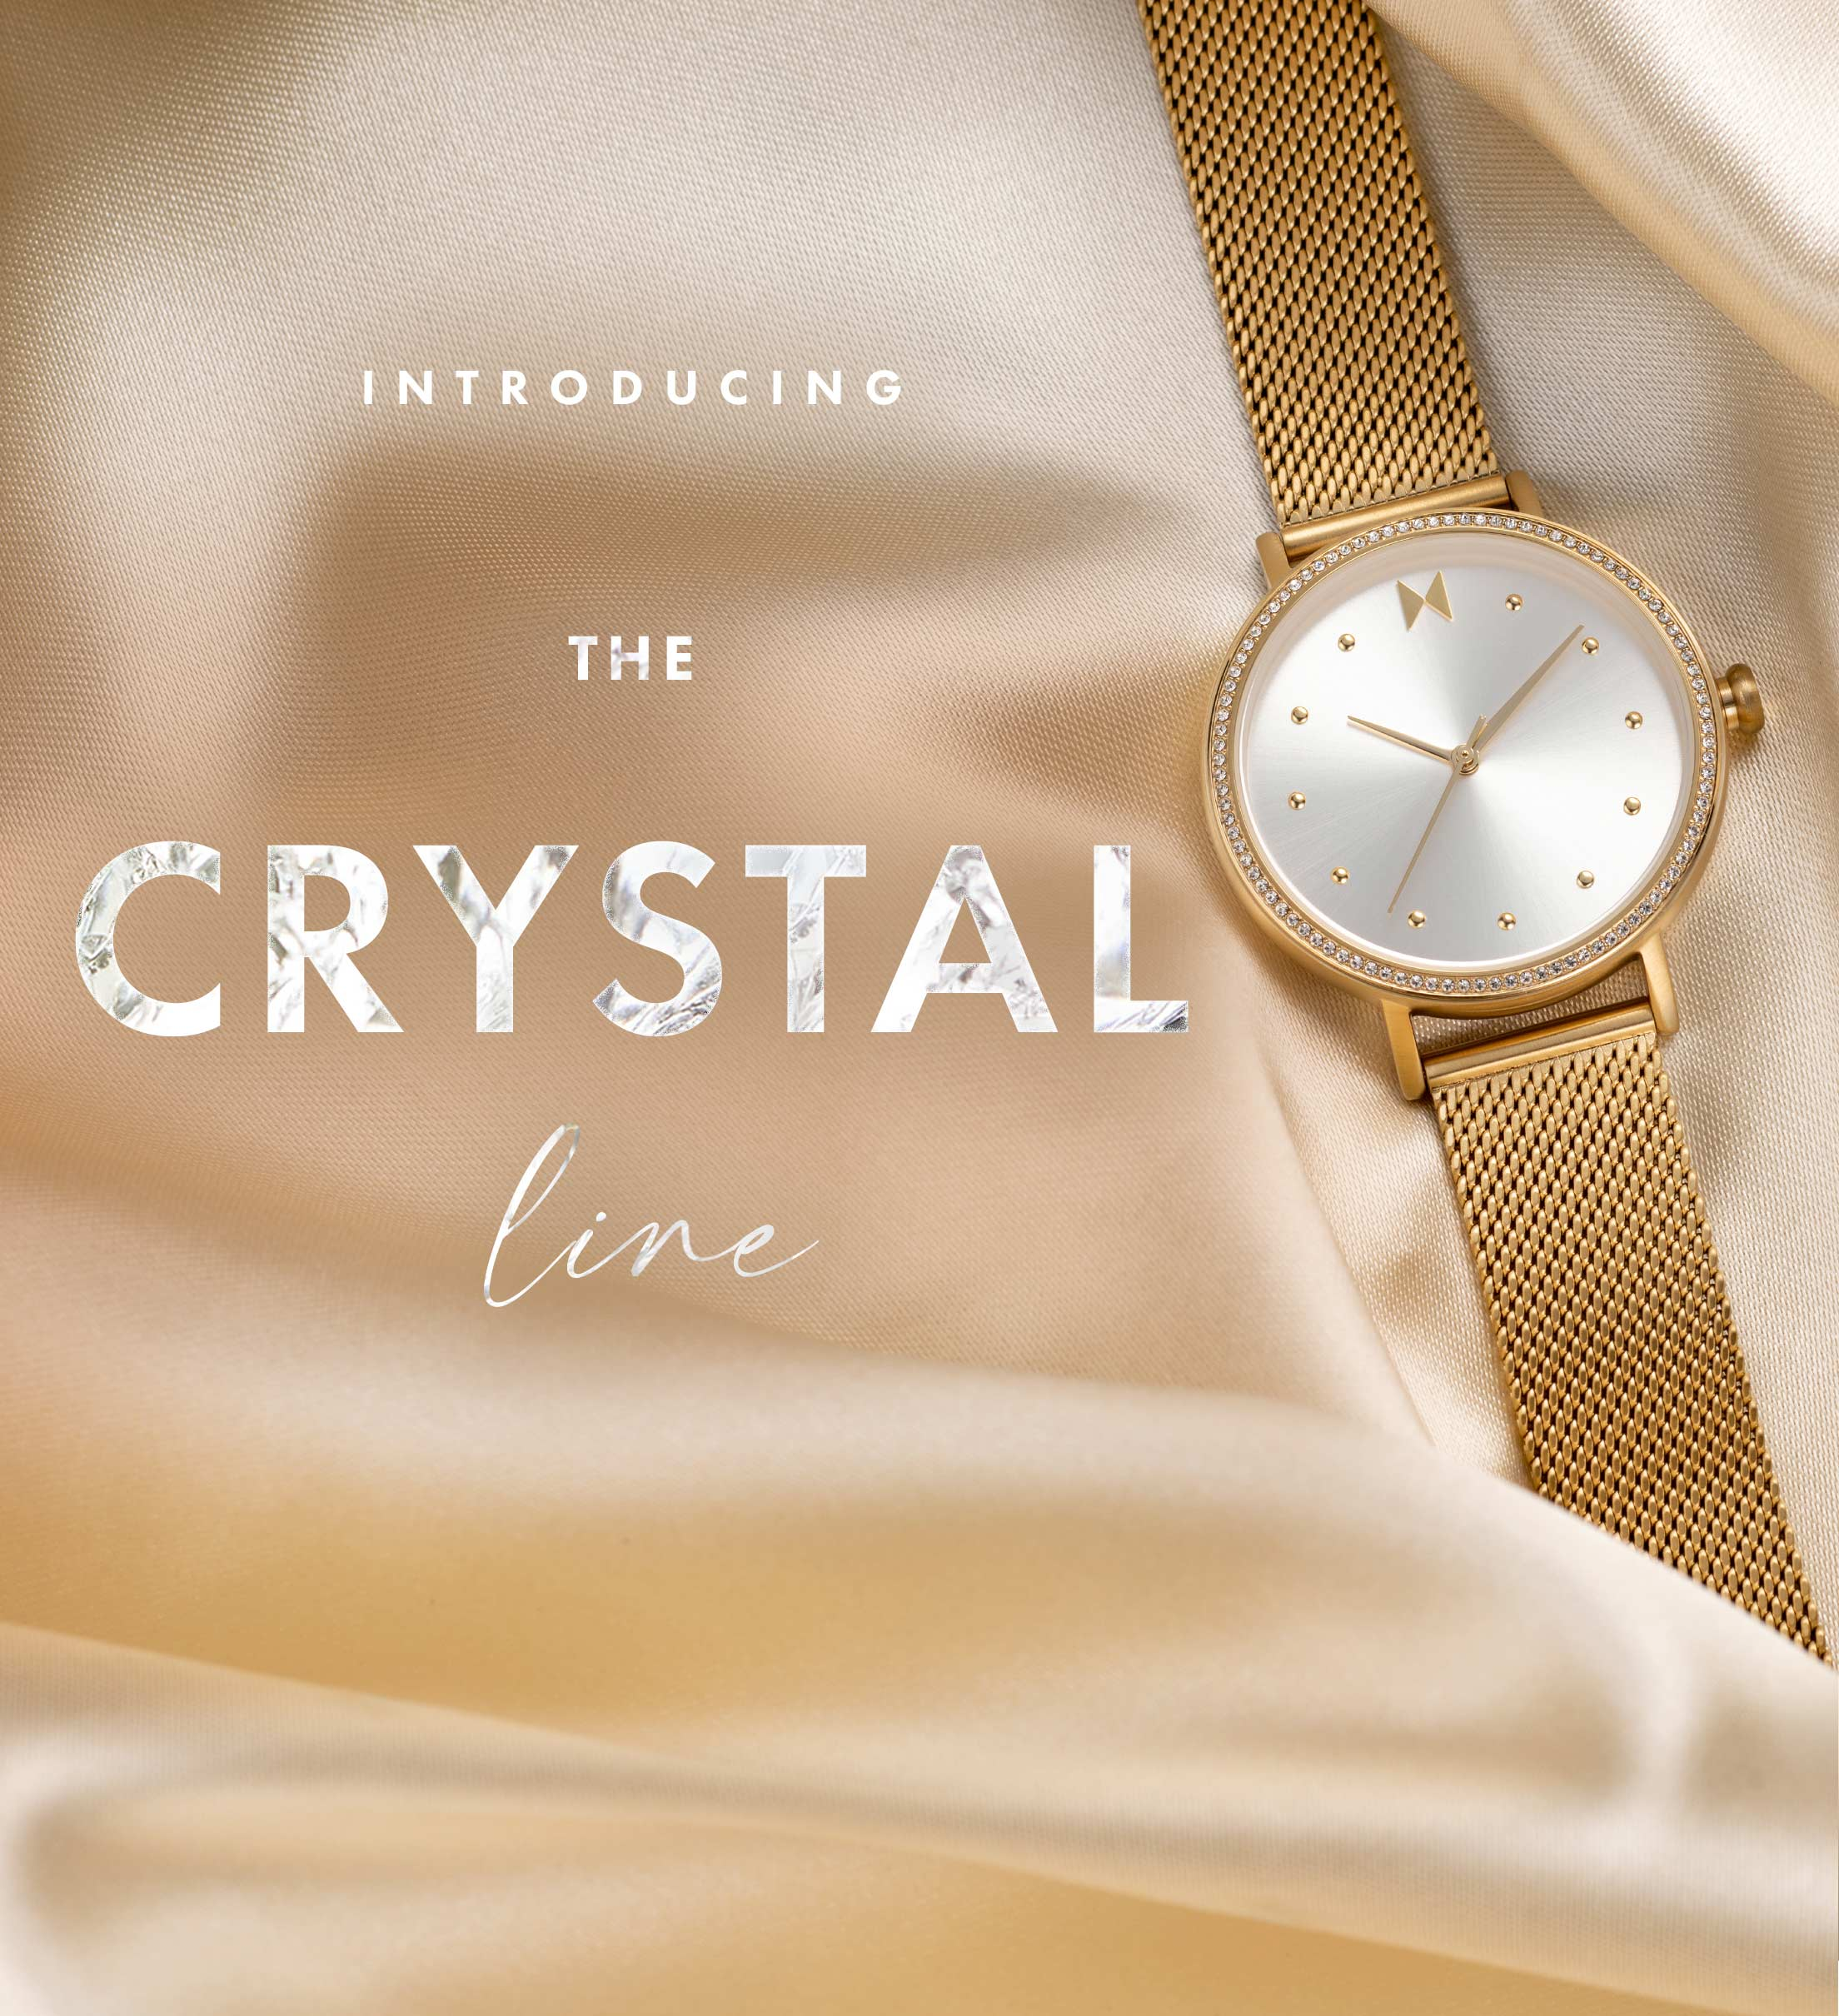 Introducing the Crystal Line